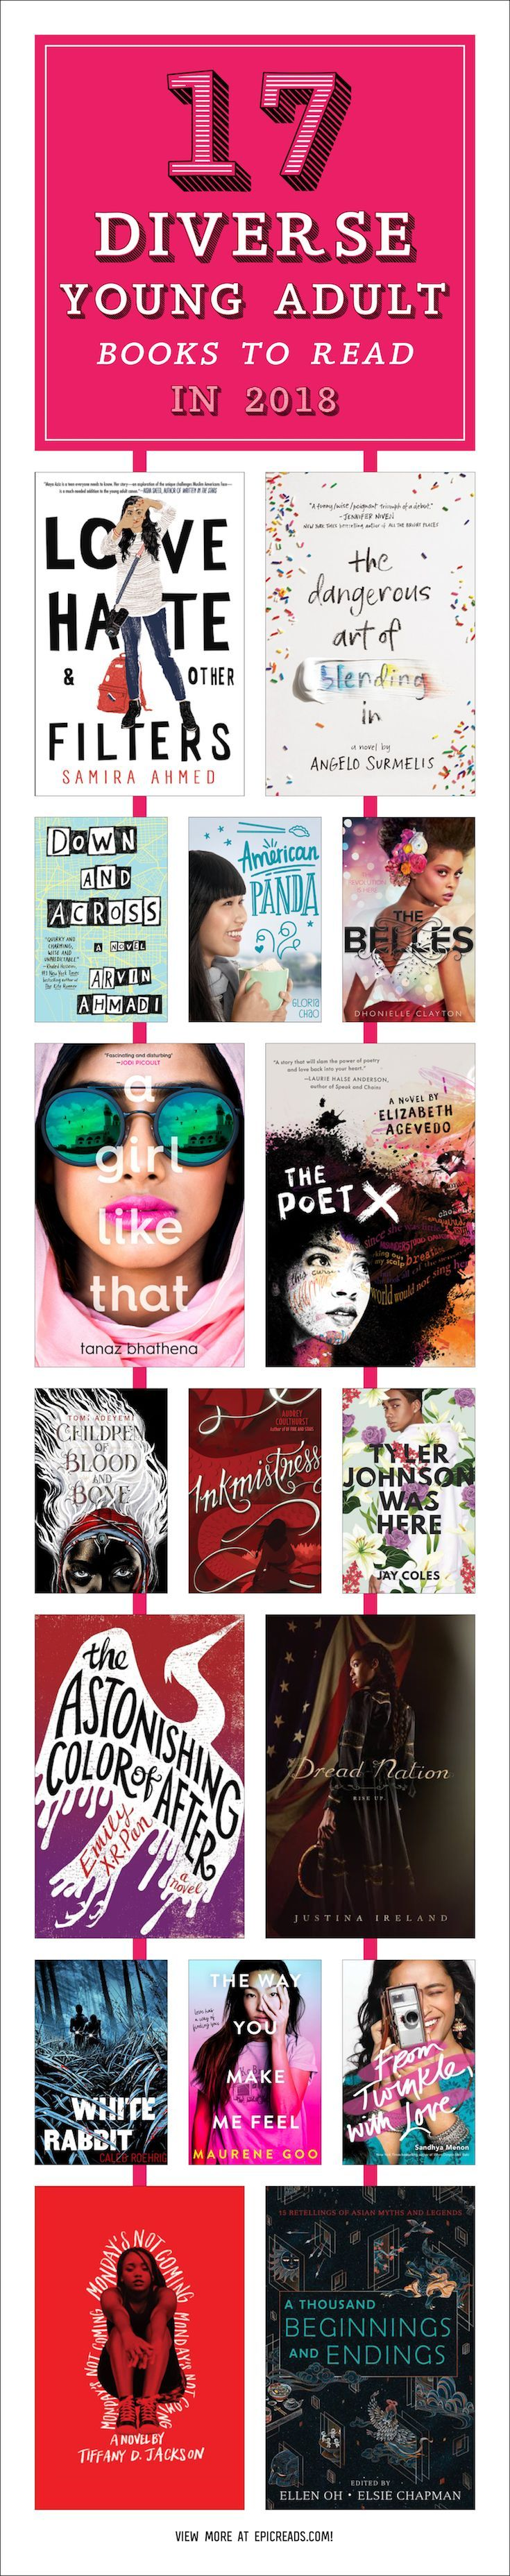 17 Diverse Young Adult Books to Read in 2018